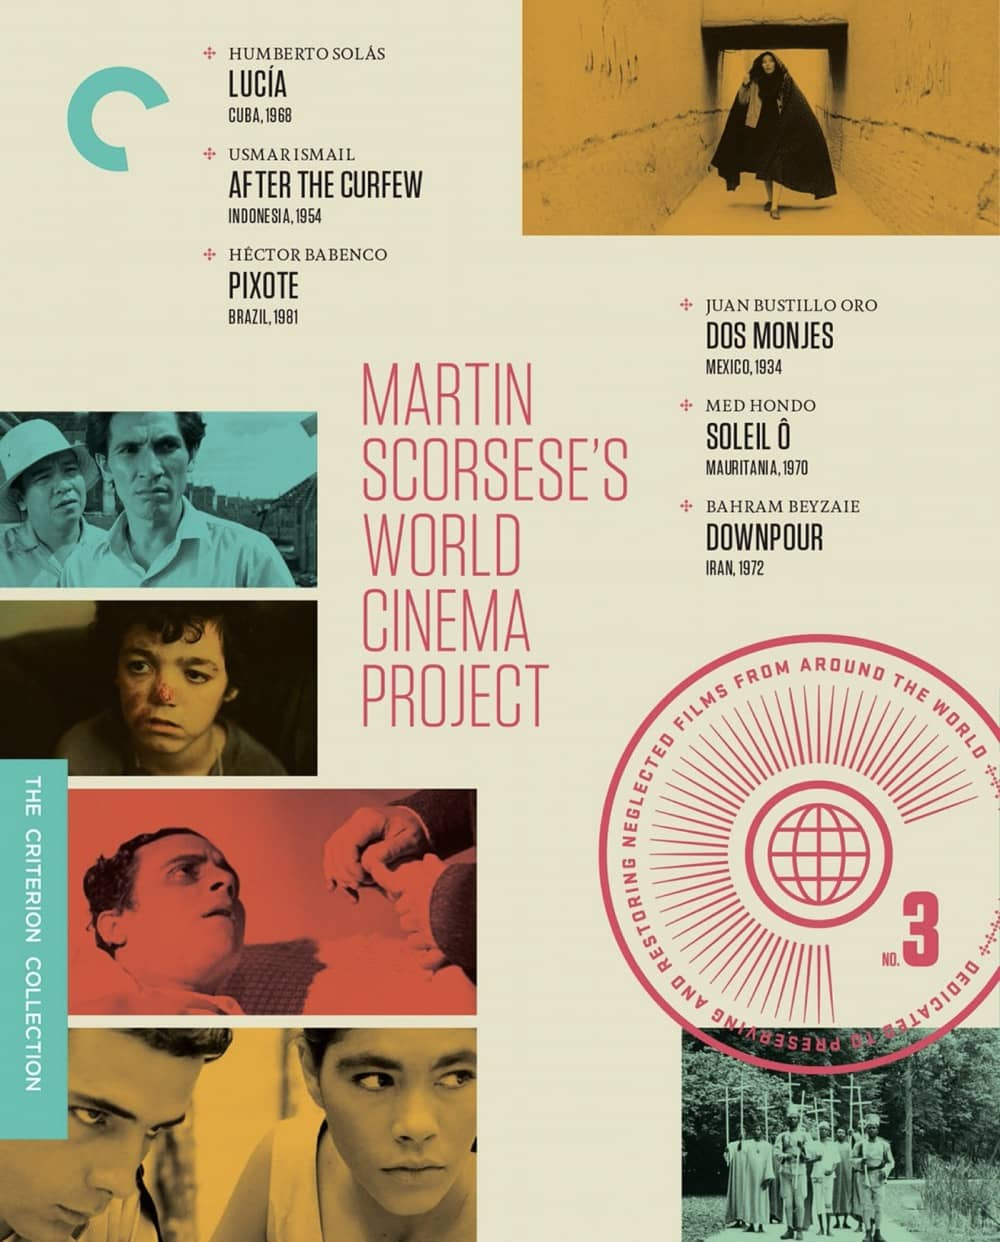 Martin Scorsese%E2%80%99s World Cinema Project No 3 criterion collection bluray cover